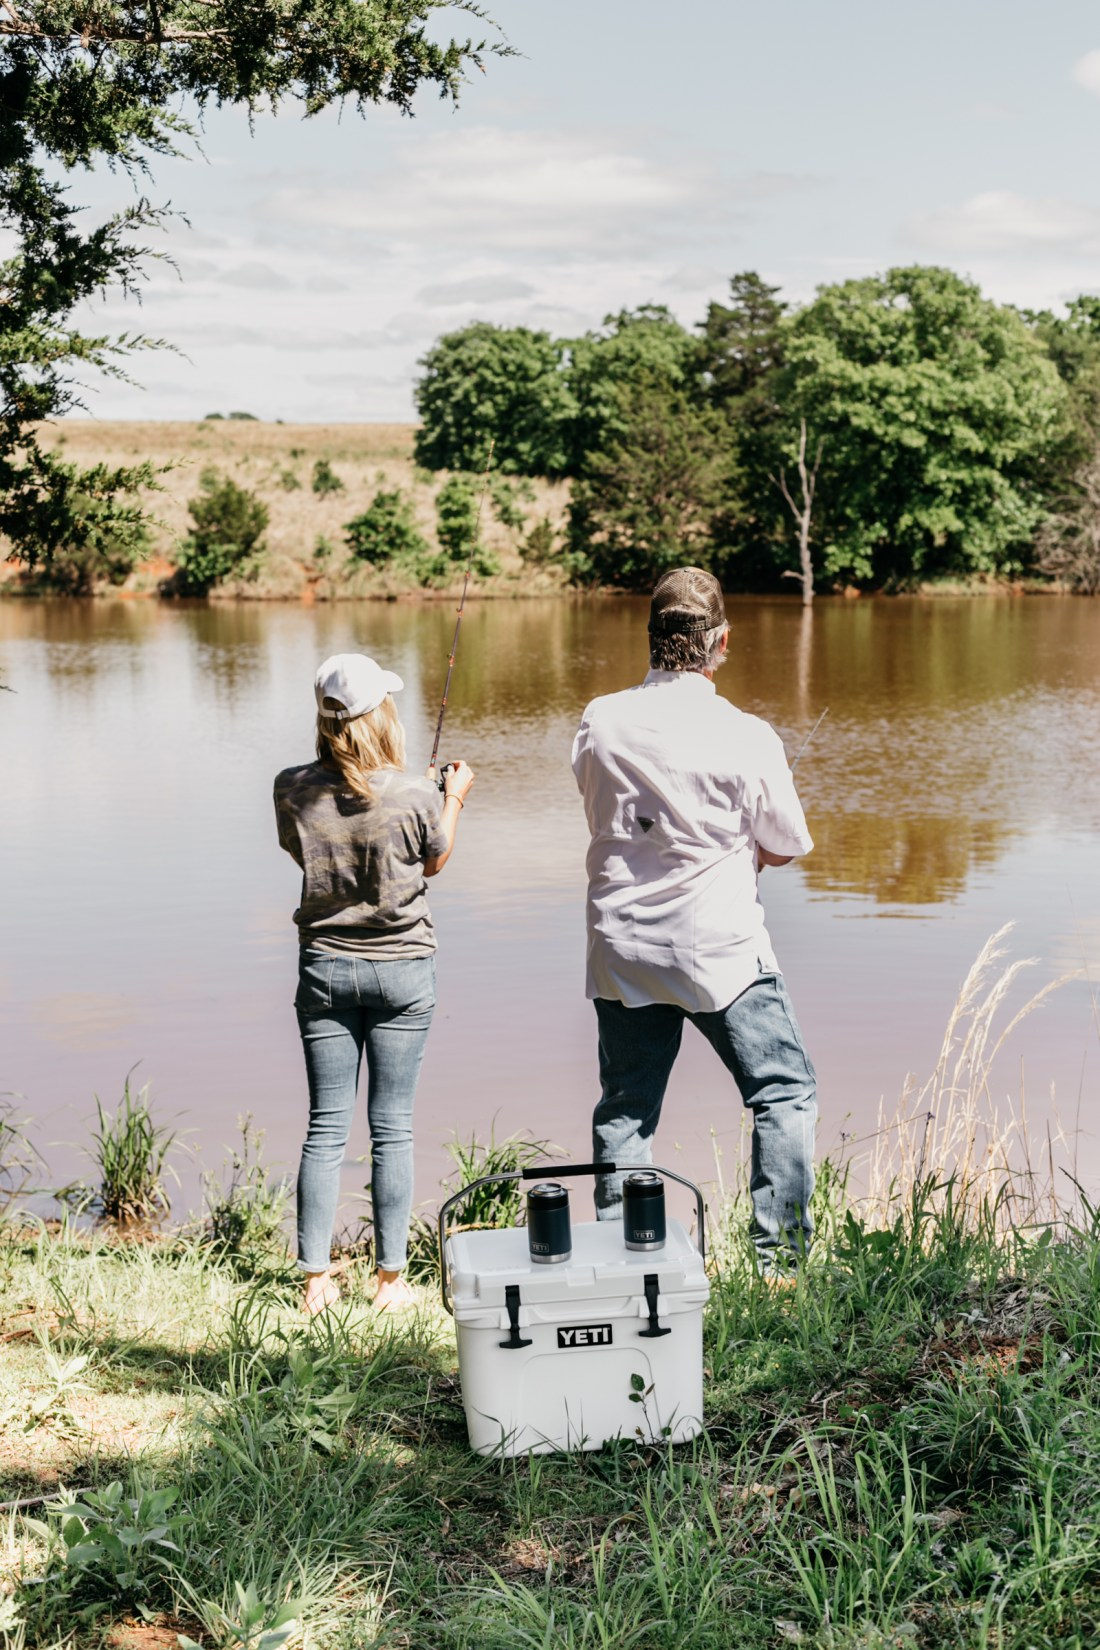 FATHER'S DAY GIFTS - Yeti cooler and can holders - One Small Blonde Blog